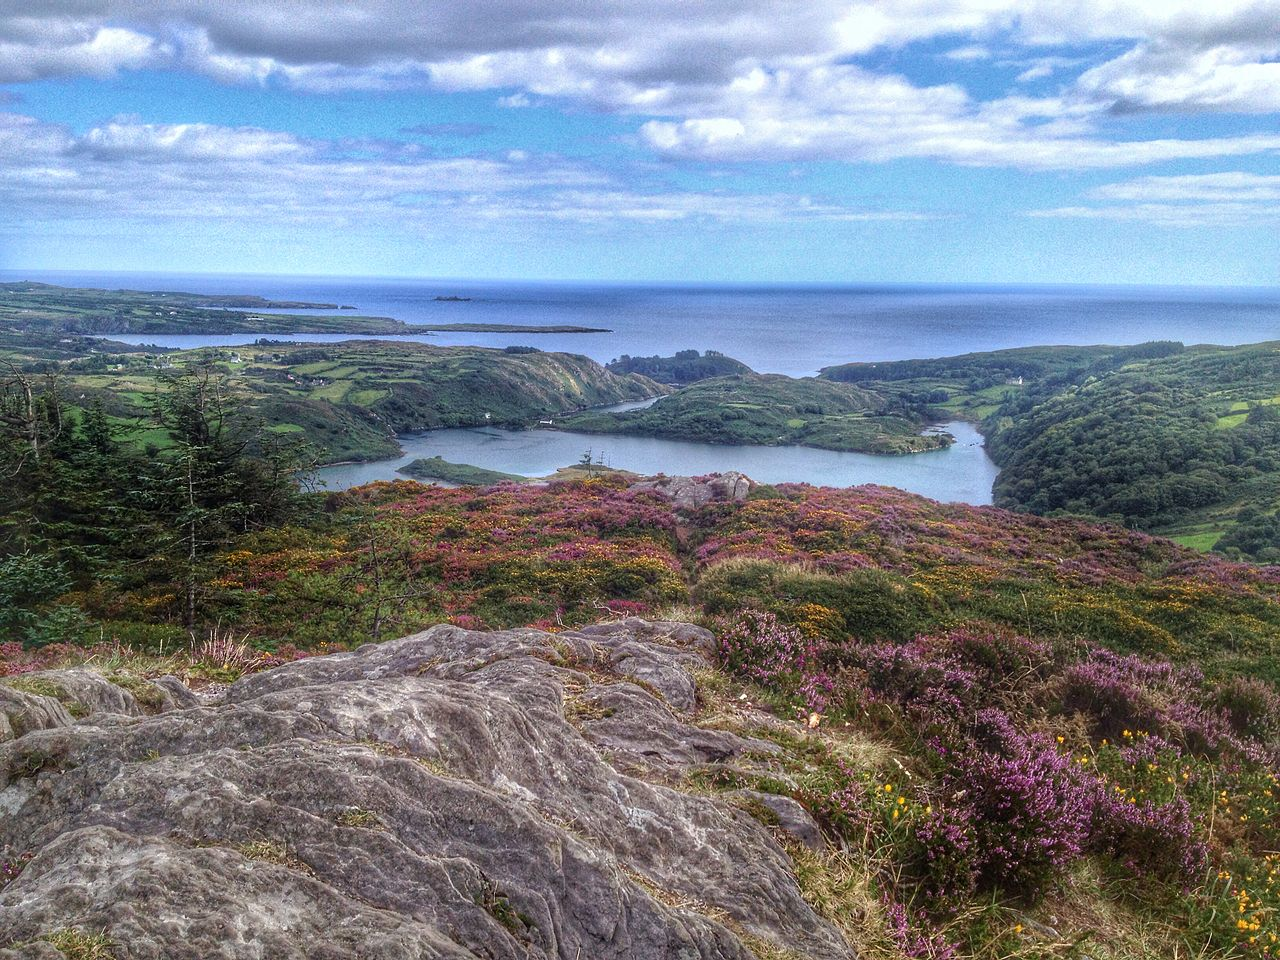 Kayaking at Lough Hyne is one of the best things to do in Cork